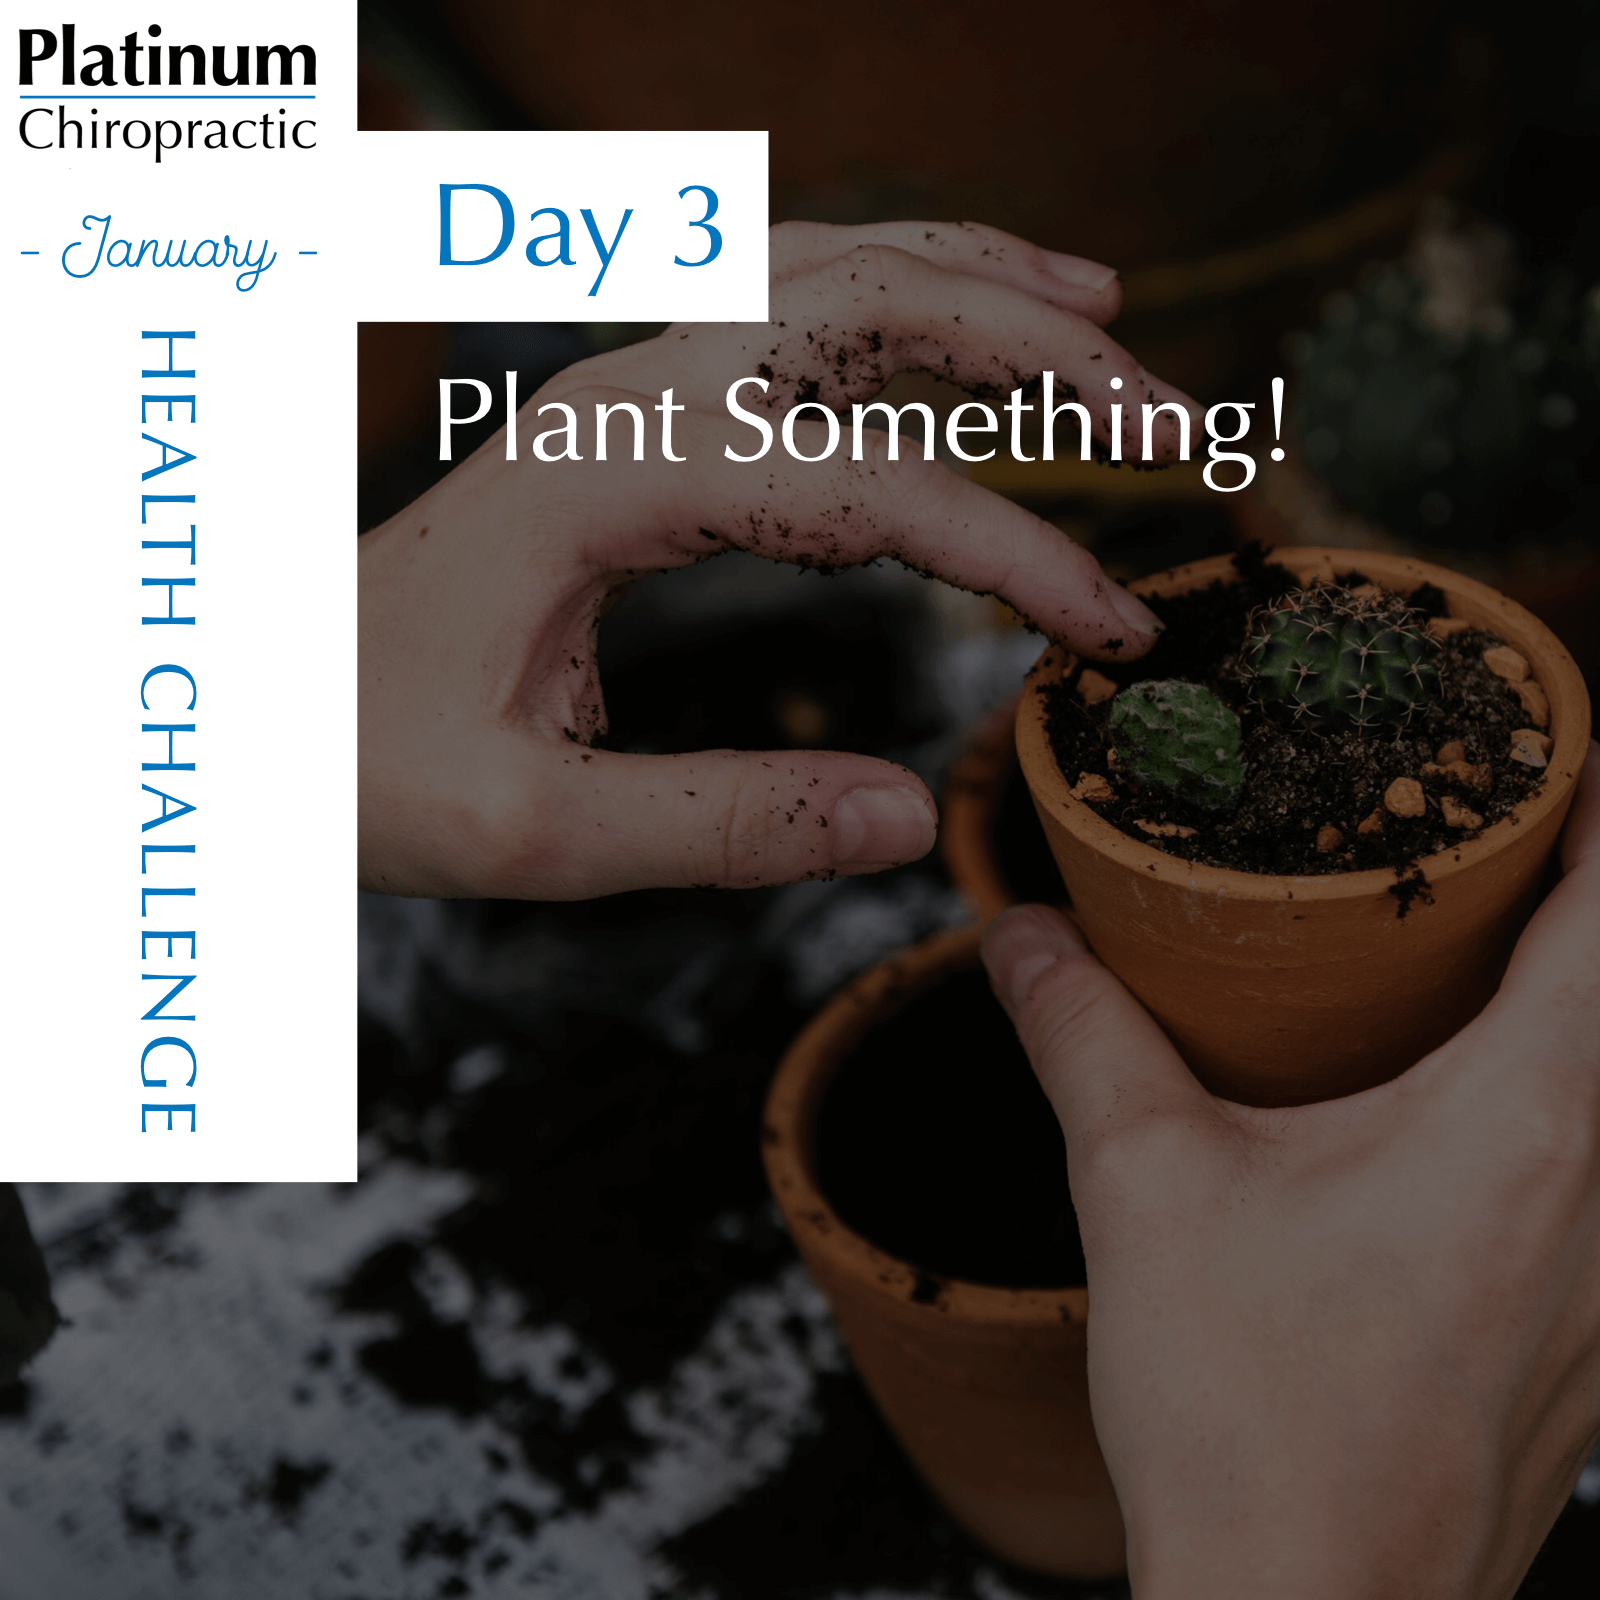 Day 3 of our Patient Appreciation Challenge, plant something. Stop by the office for a gardening kit.